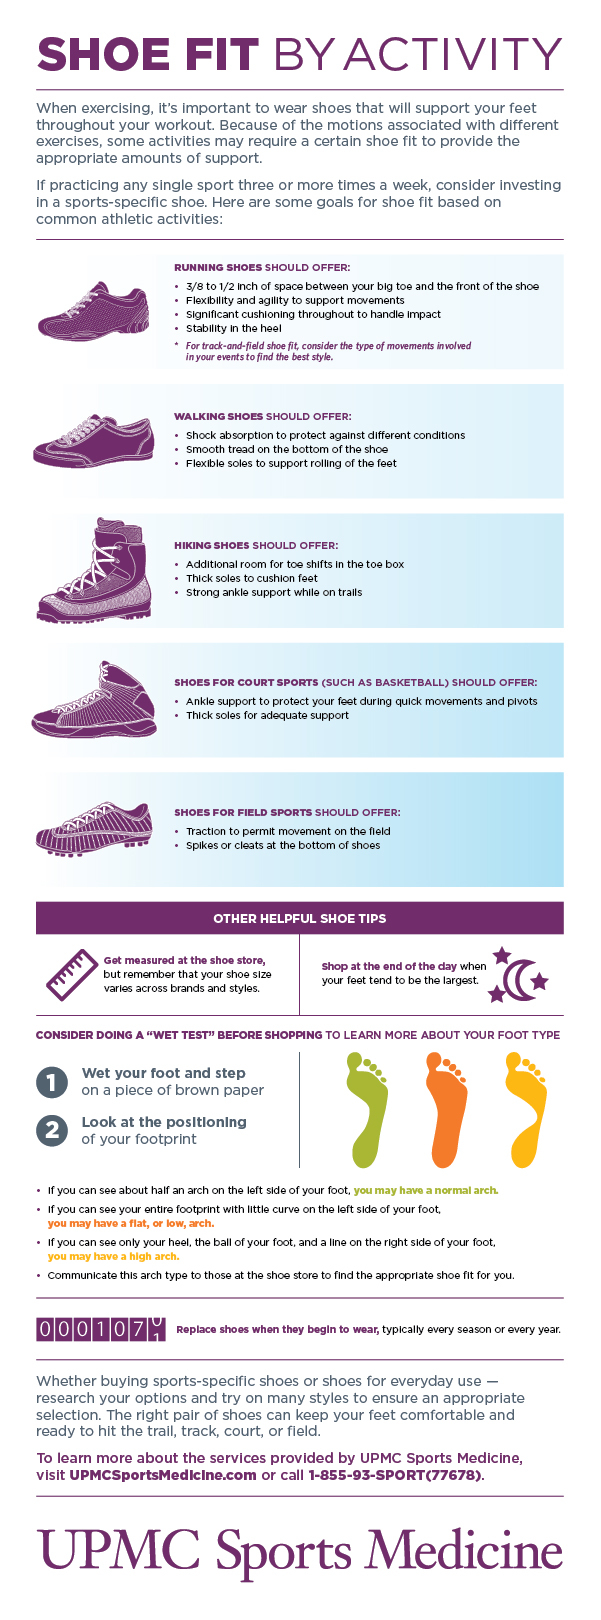 Learn more about proper shoe fit for various athletic activities.